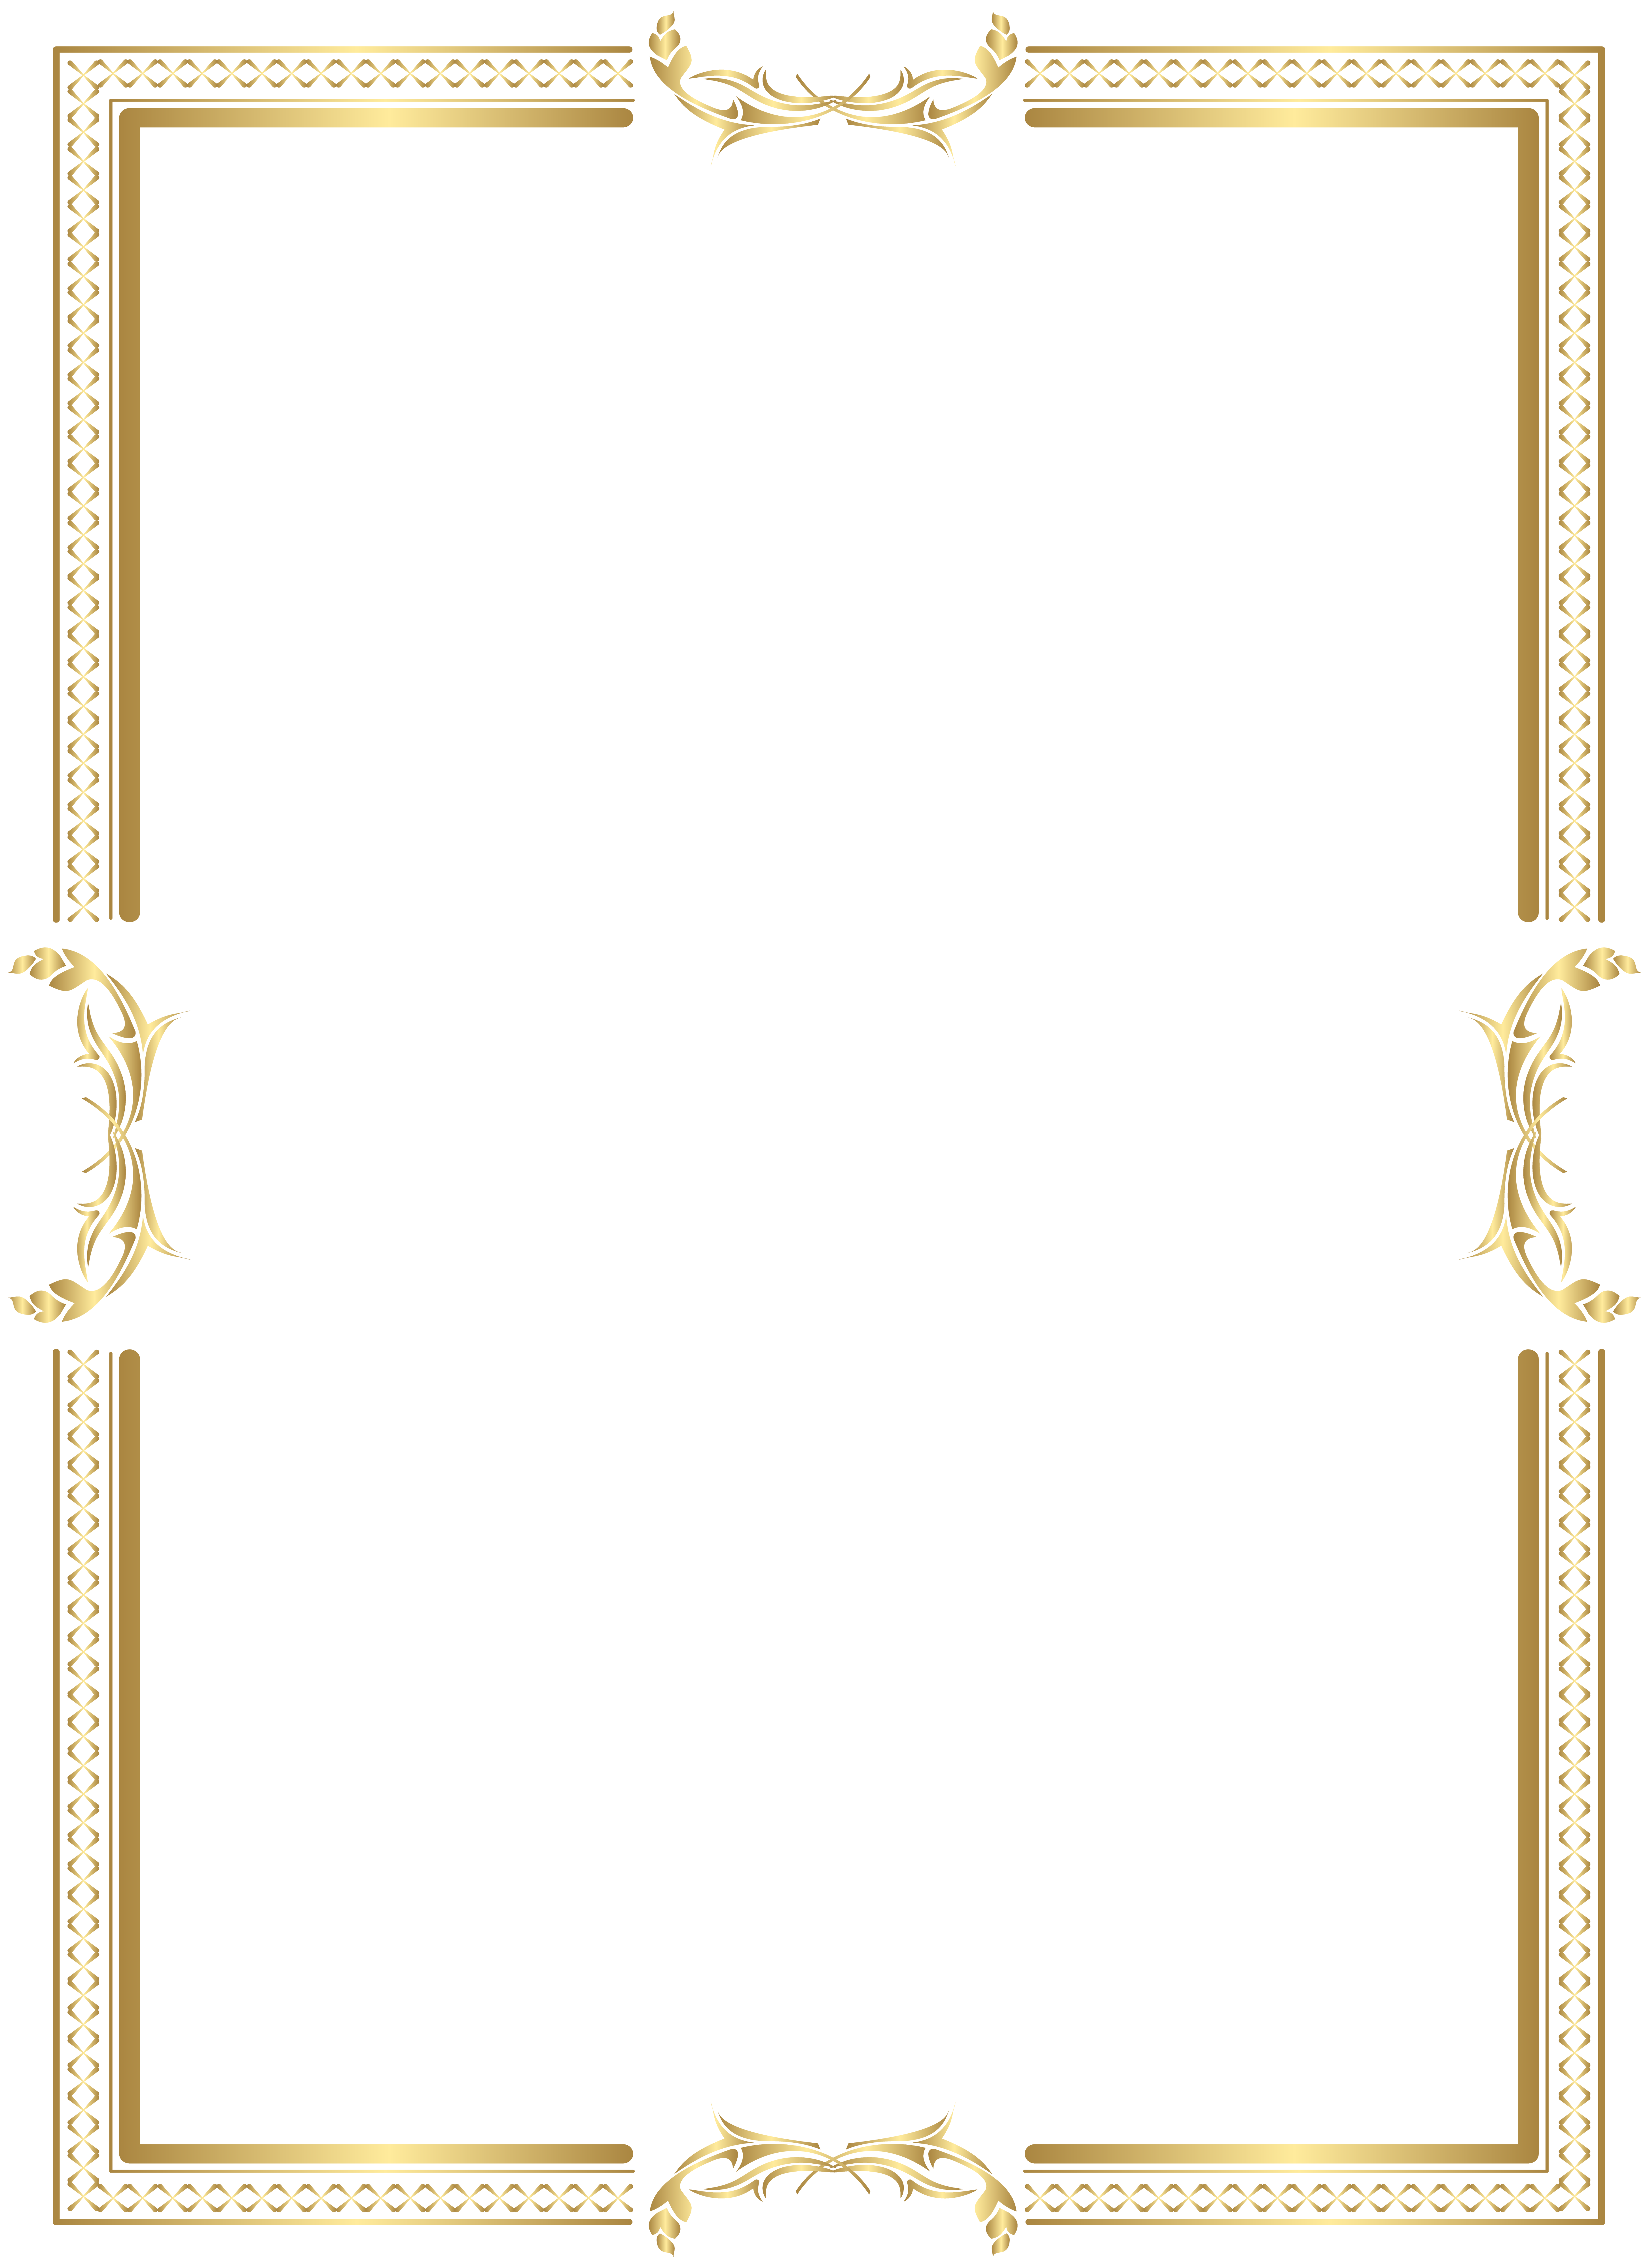 Png gold border. Yellow area pattern frame